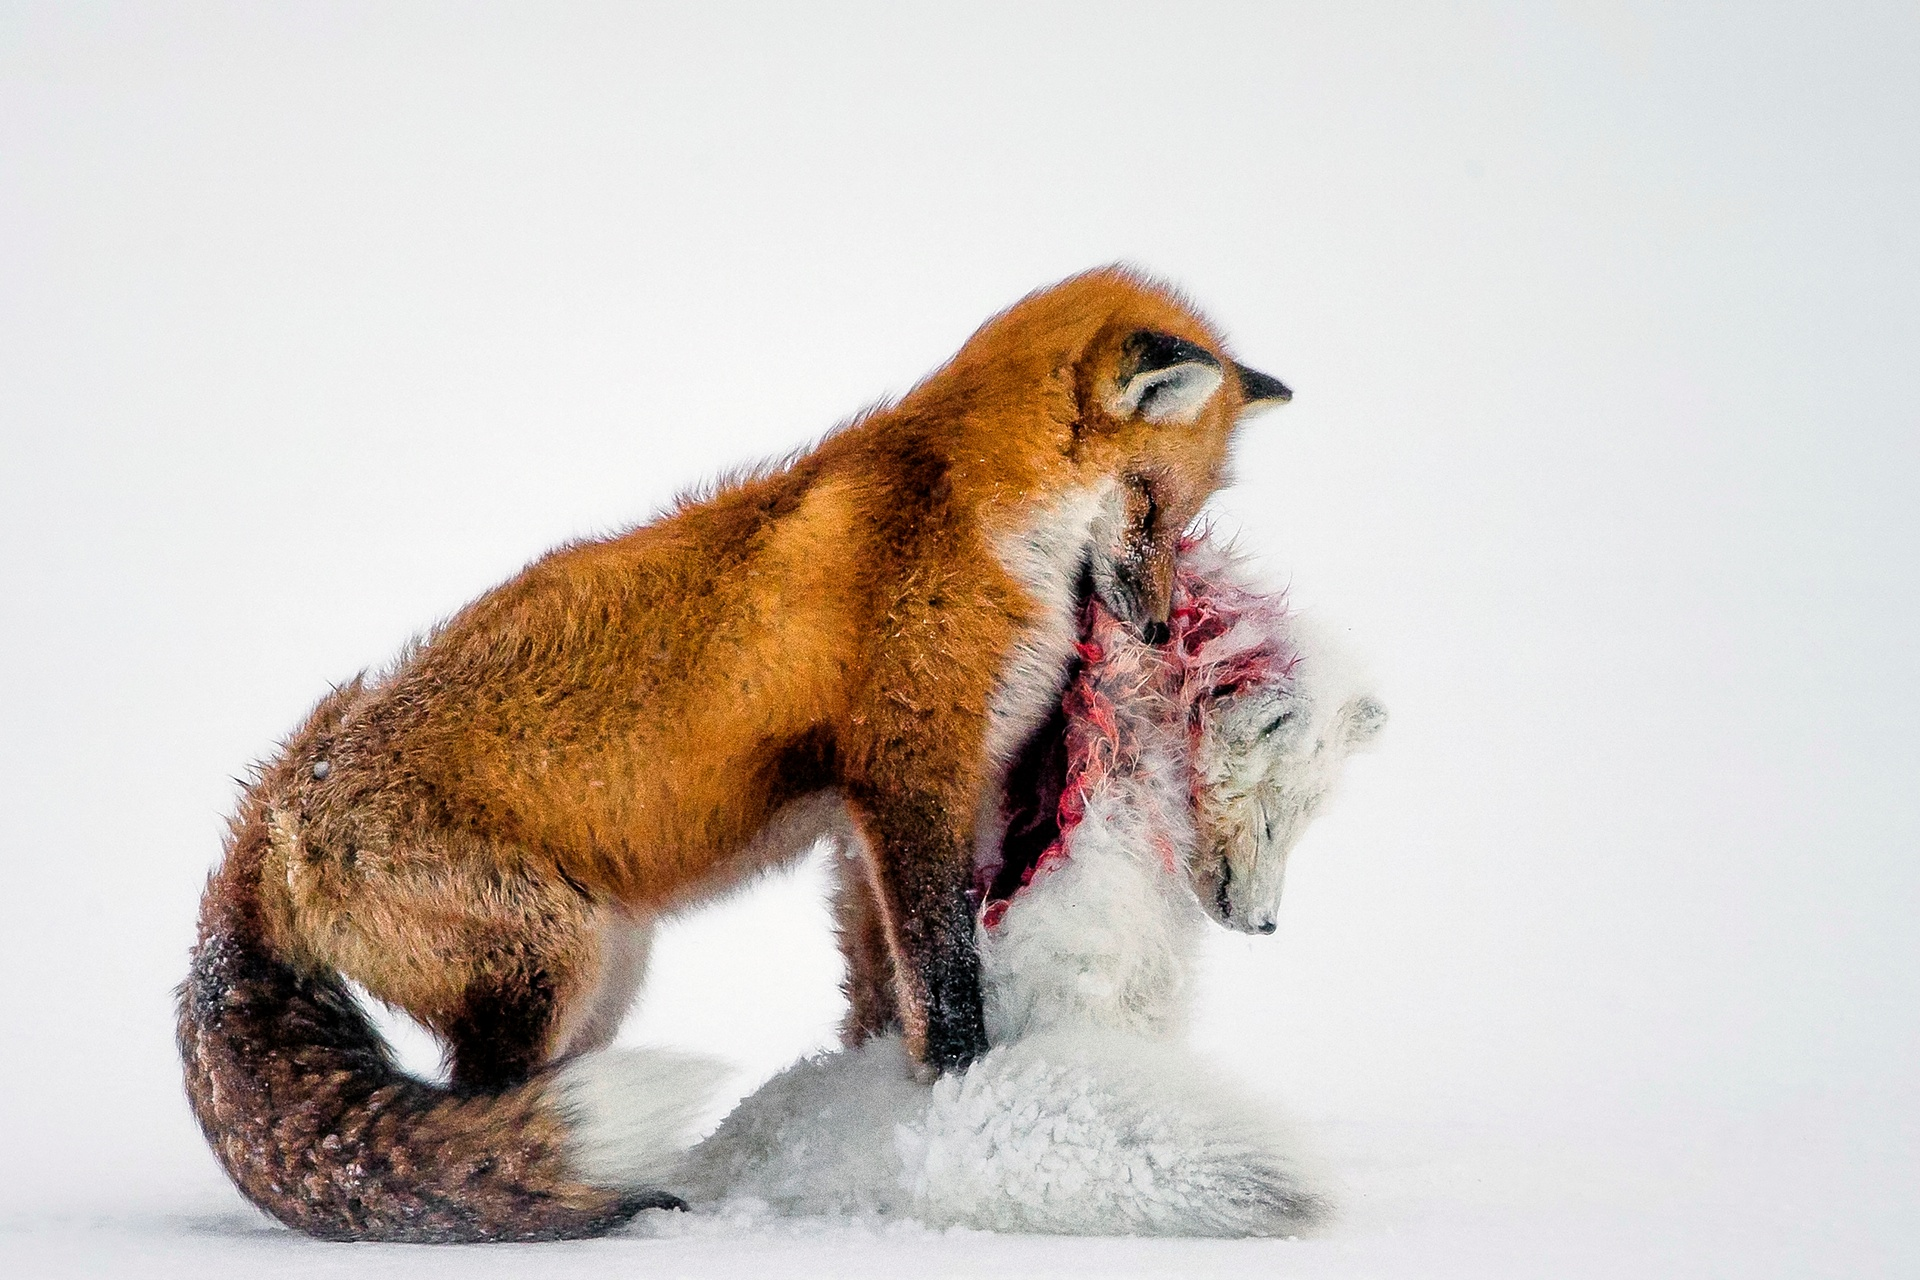 Wildlife photographer of the year winner and mammals category winner: A tale of two foxes by Don Gutoski (Canada).